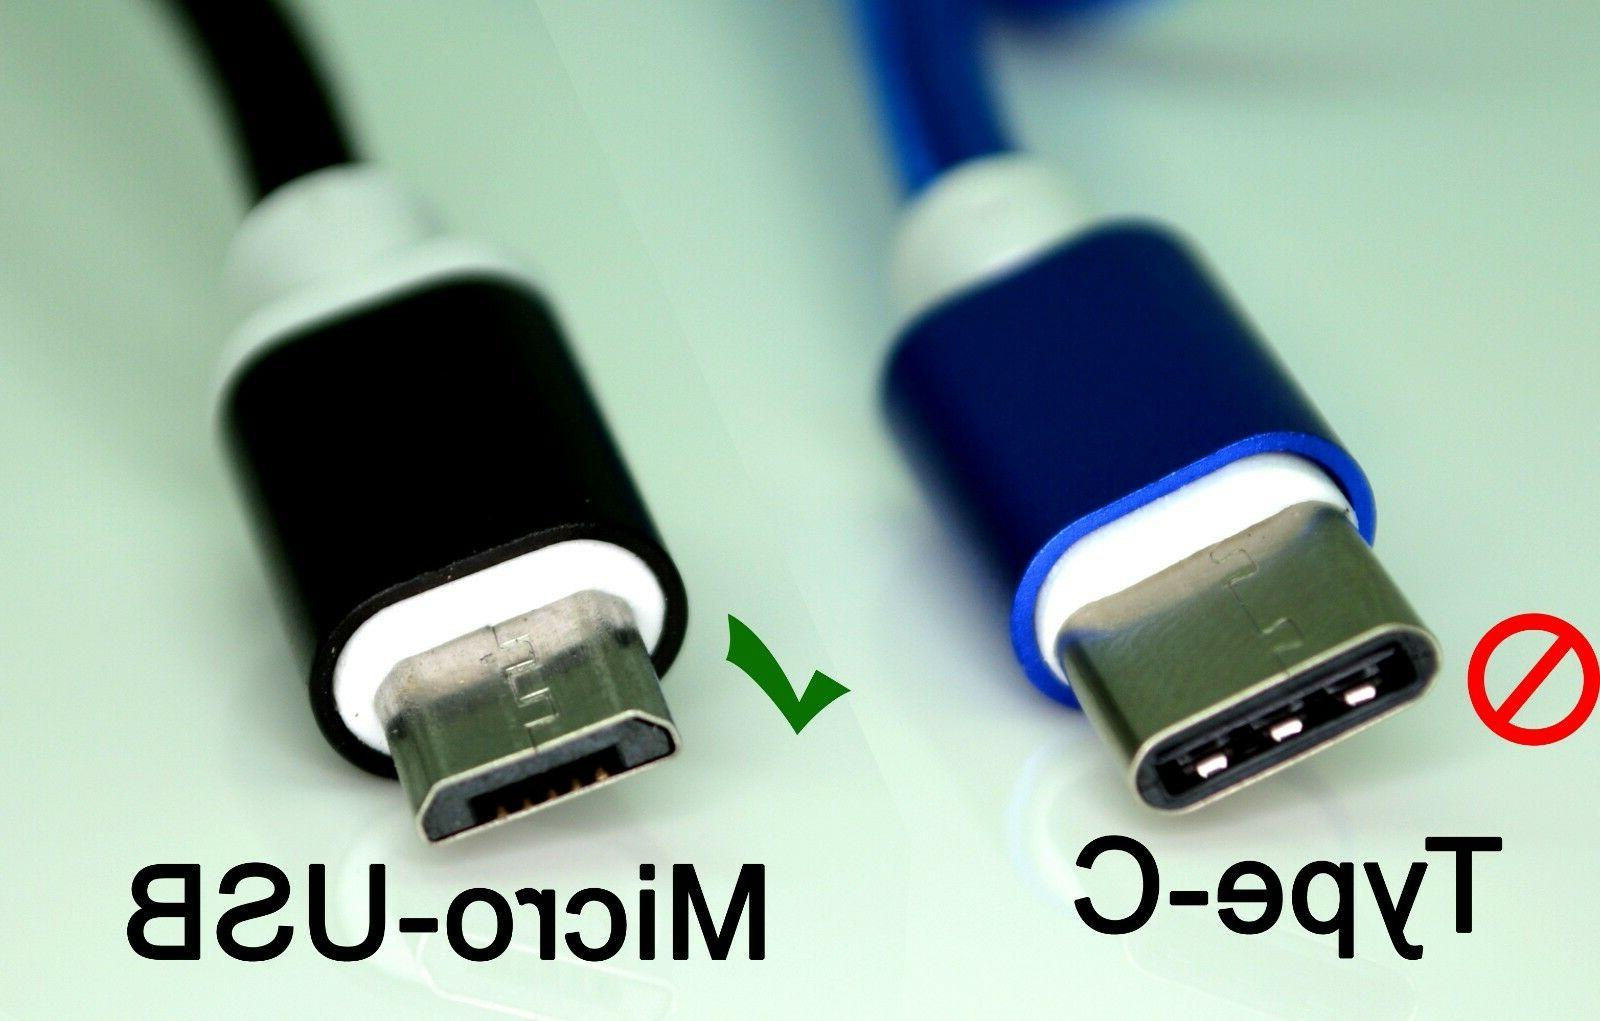 10' Foot USB 2.0 For Android Phones Cord lot